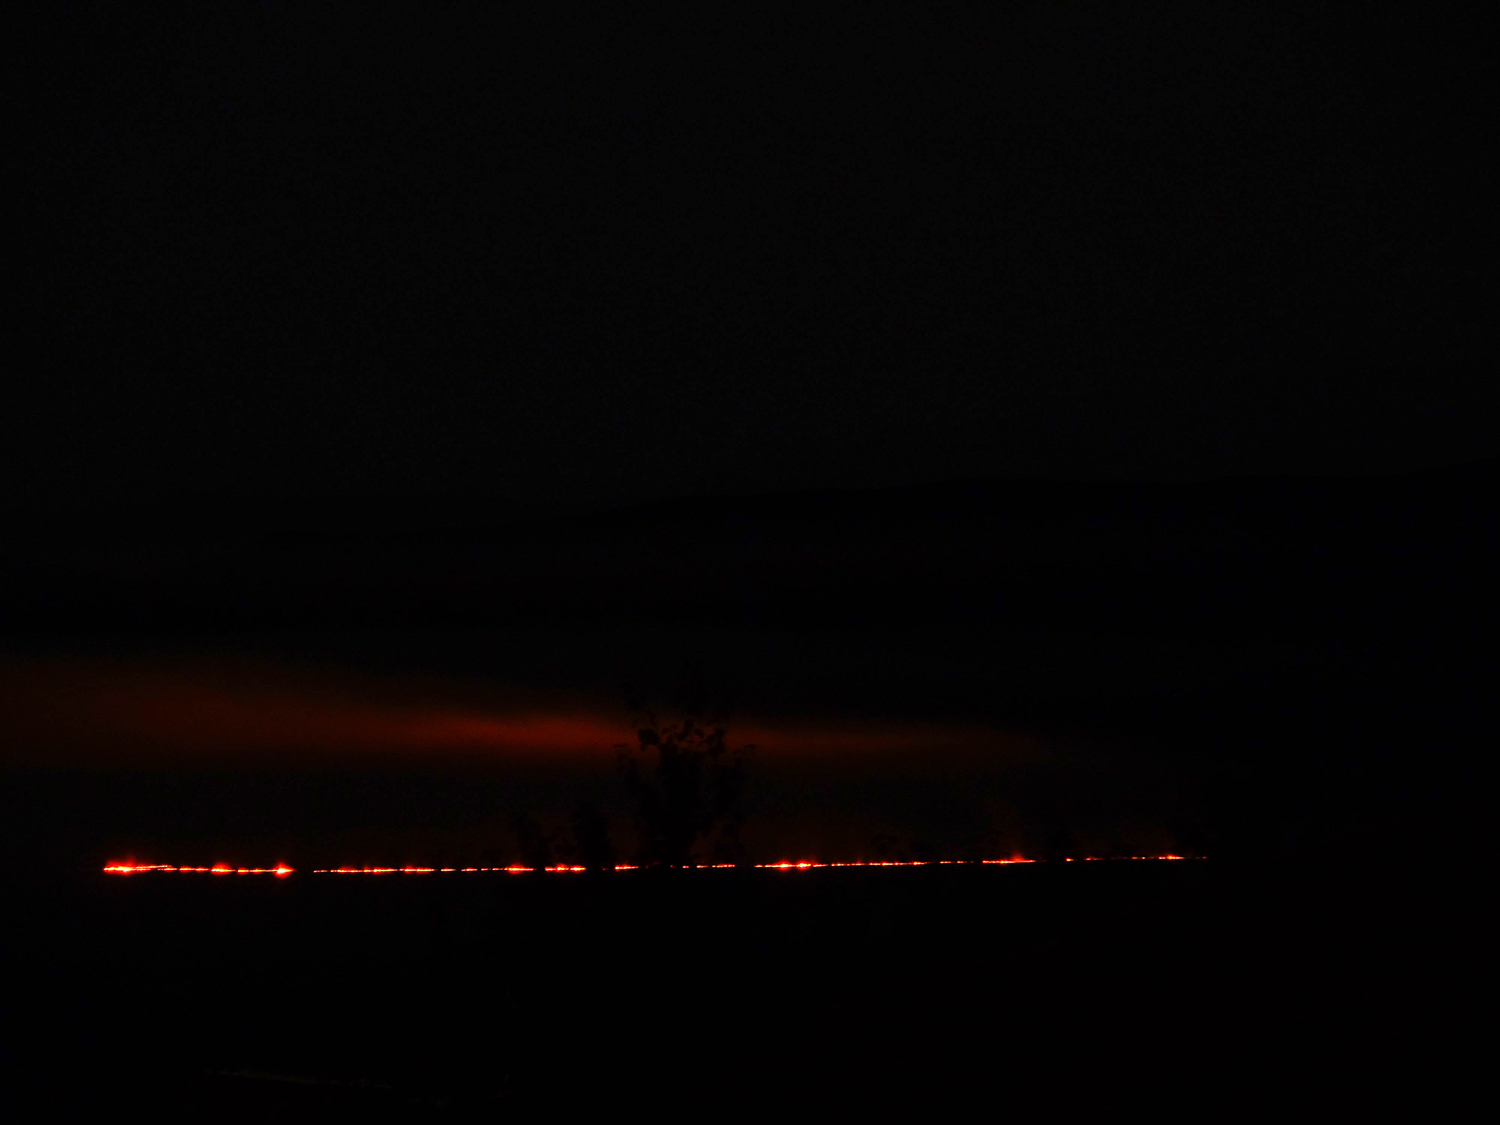 <p>An eerie spectacle created by farmers burning their fields by night. The technique can improve soil fertility and kill pests, but also emits greenhouse gases and air pollution.<br /></p>